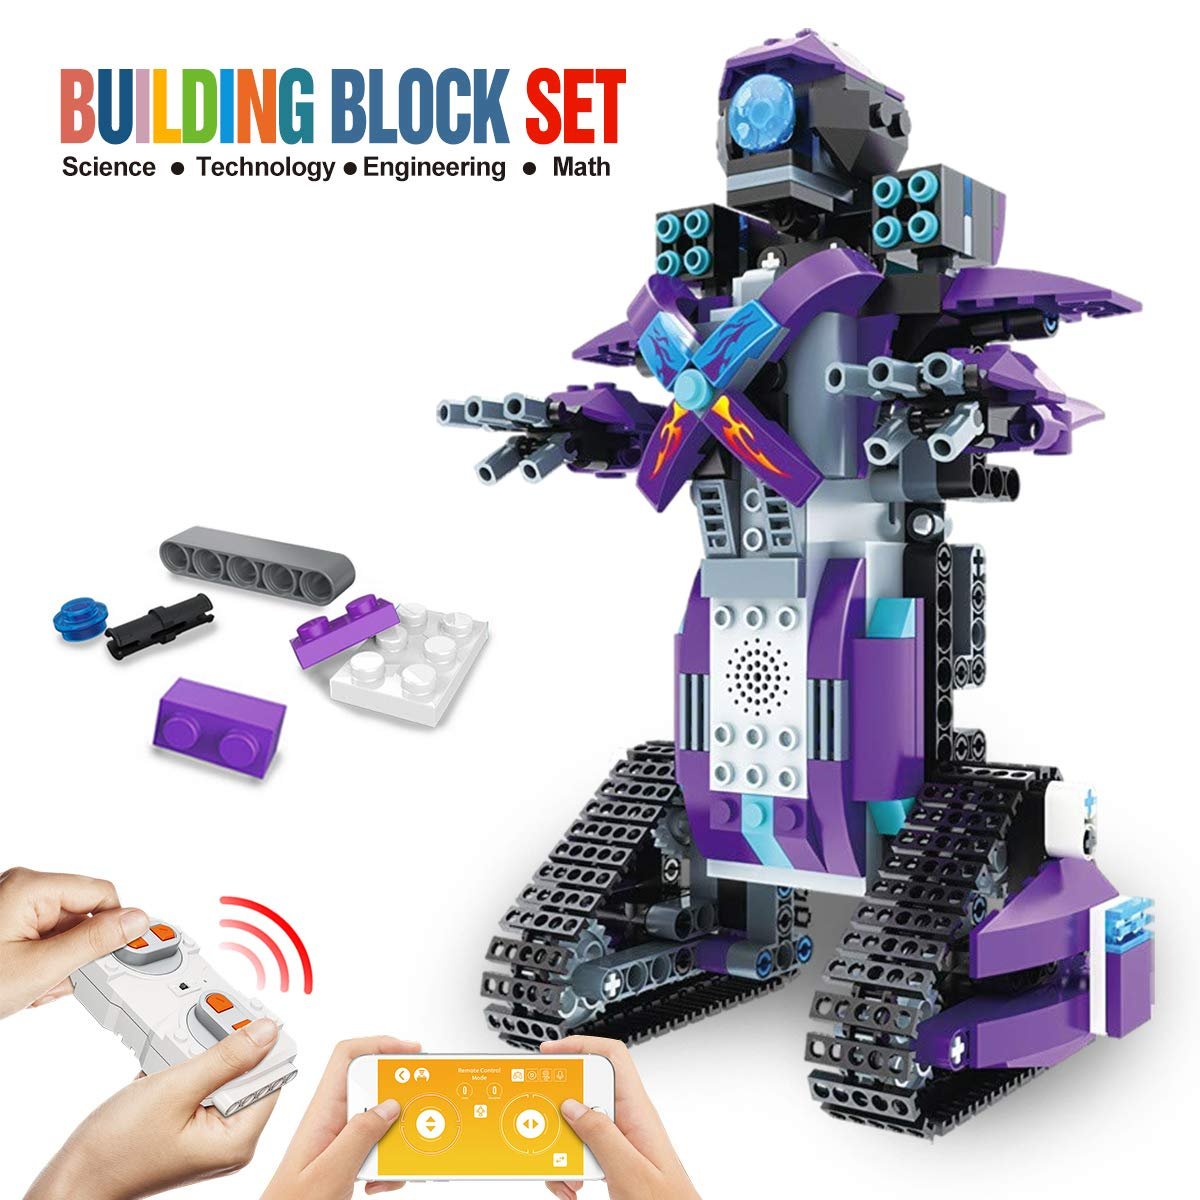 DAZHONG Remote Control Robot STEM Application Building Block Robot Education kit Remote Control Engineering Science Education Building Toy boy Girl Learning Smart Gift(Purple)